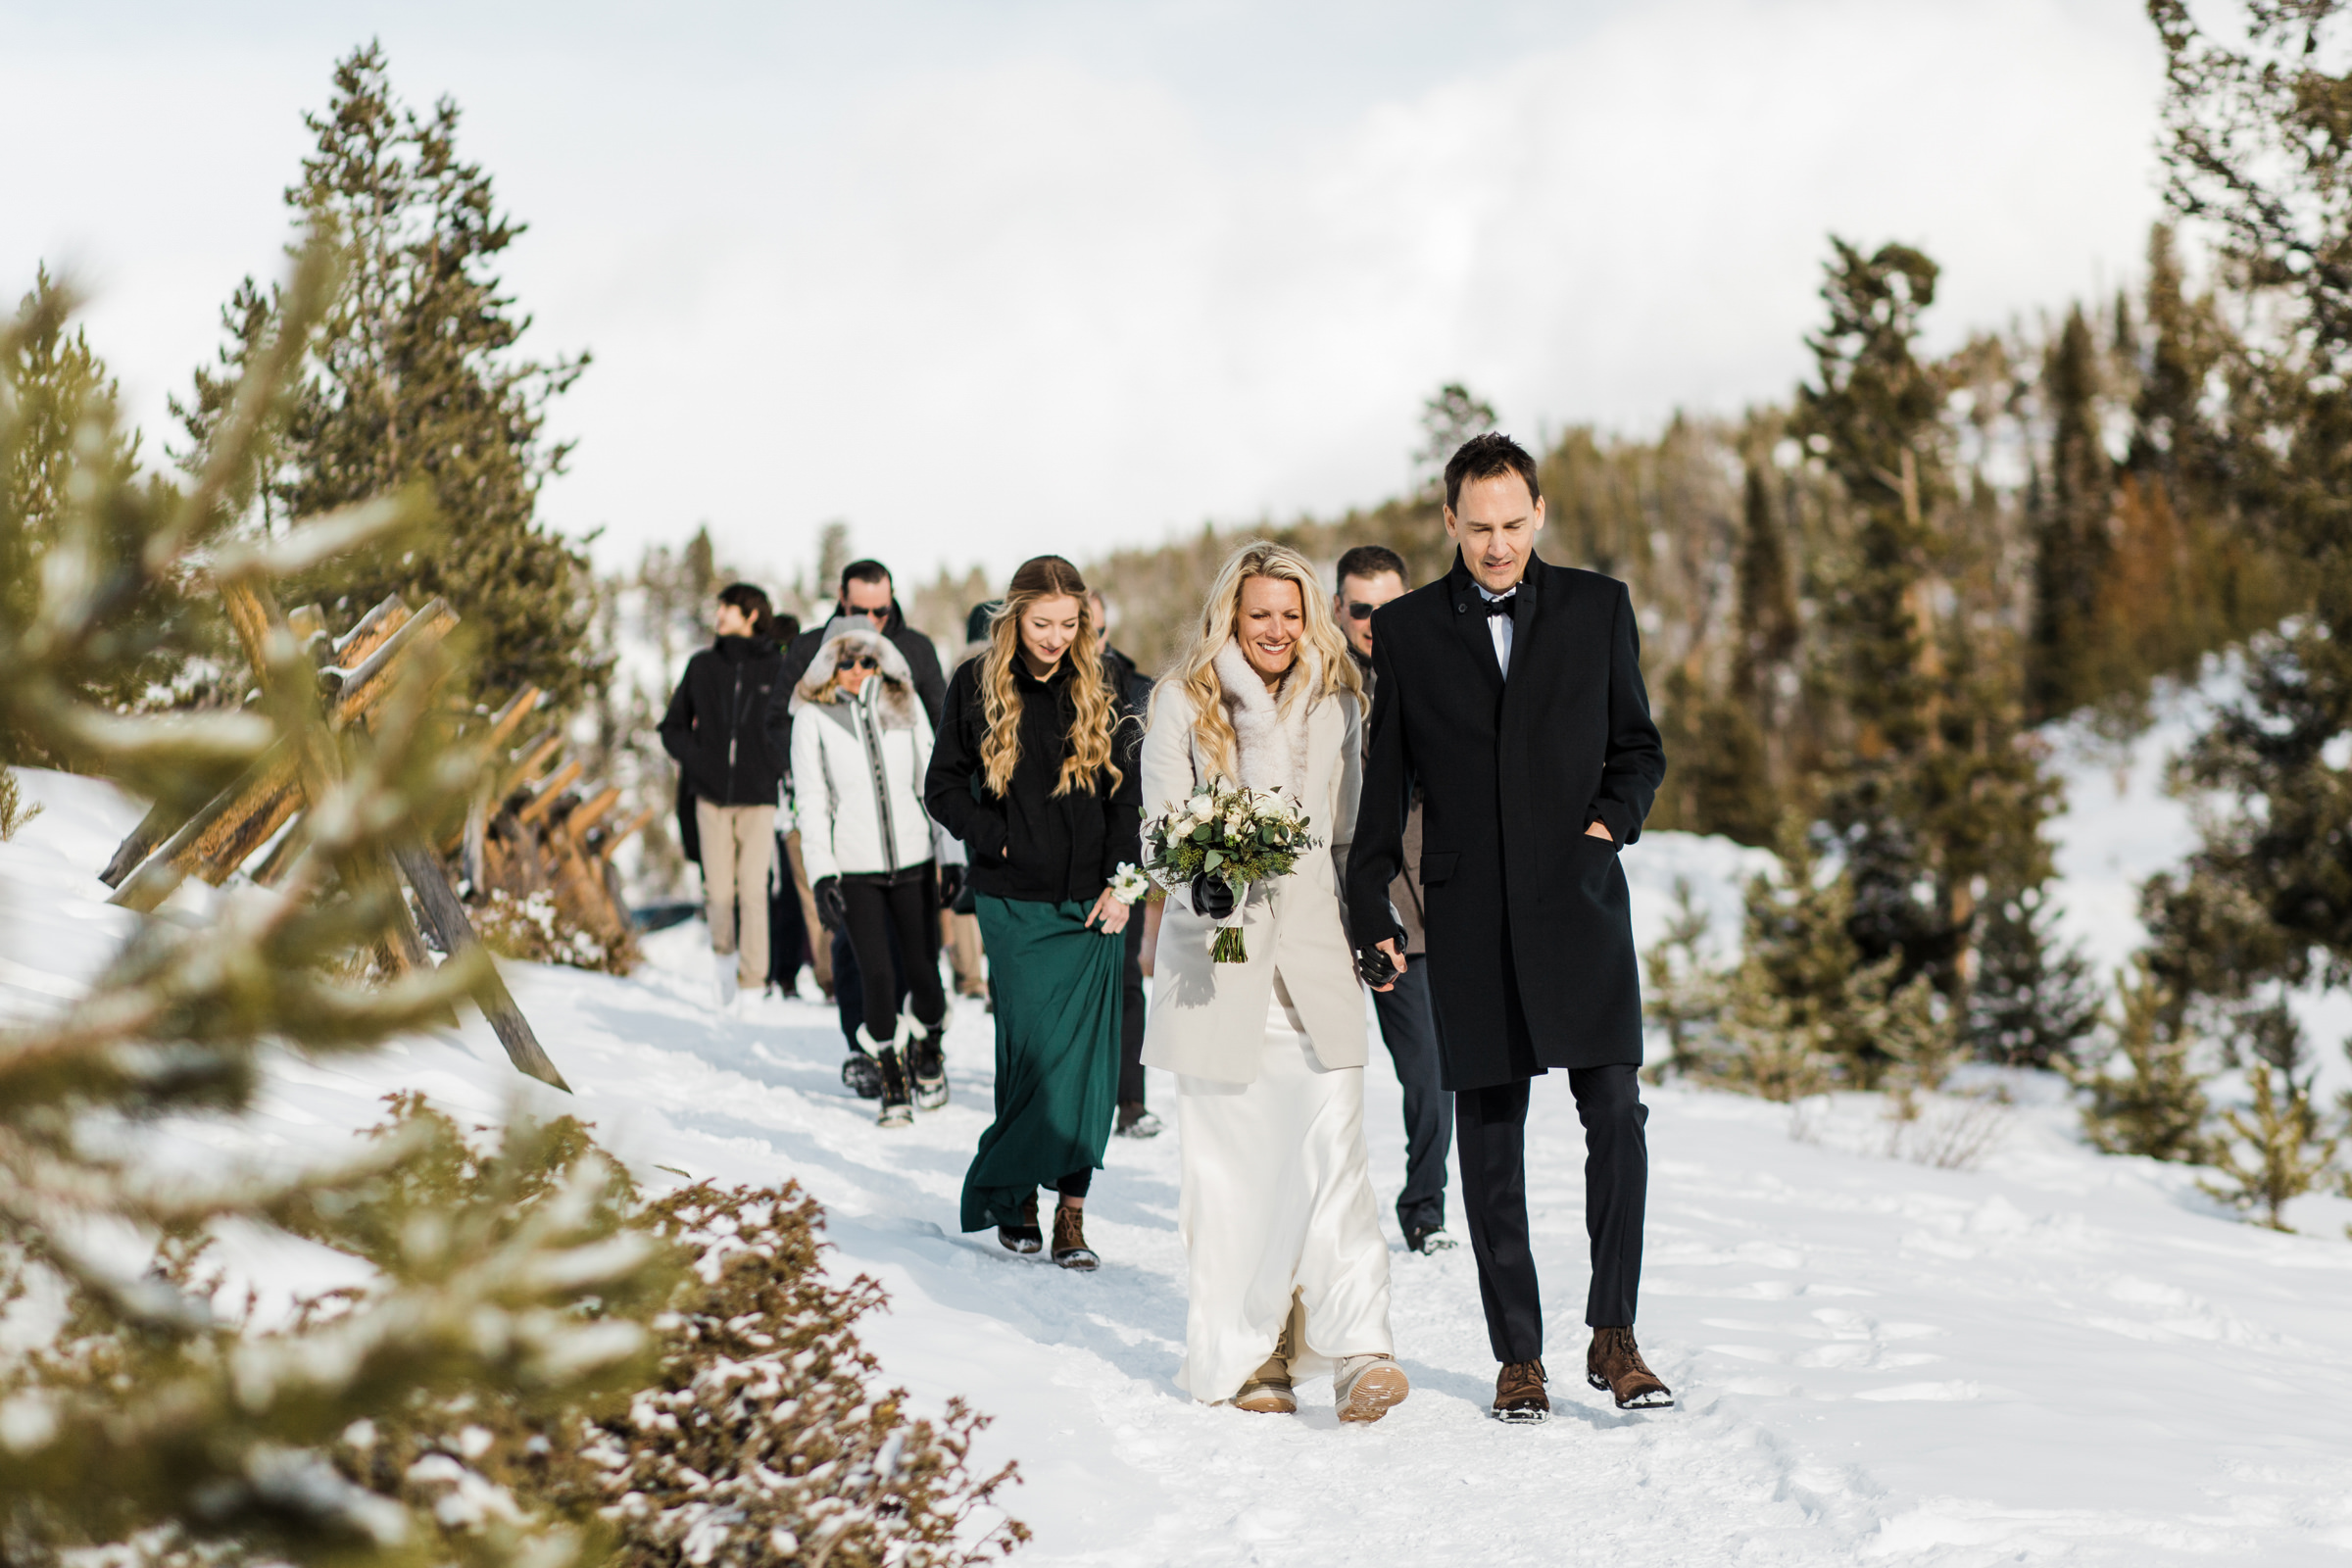 Couple makes their way to ceremony in the snow - photo by Stephanie Cristalli Photography